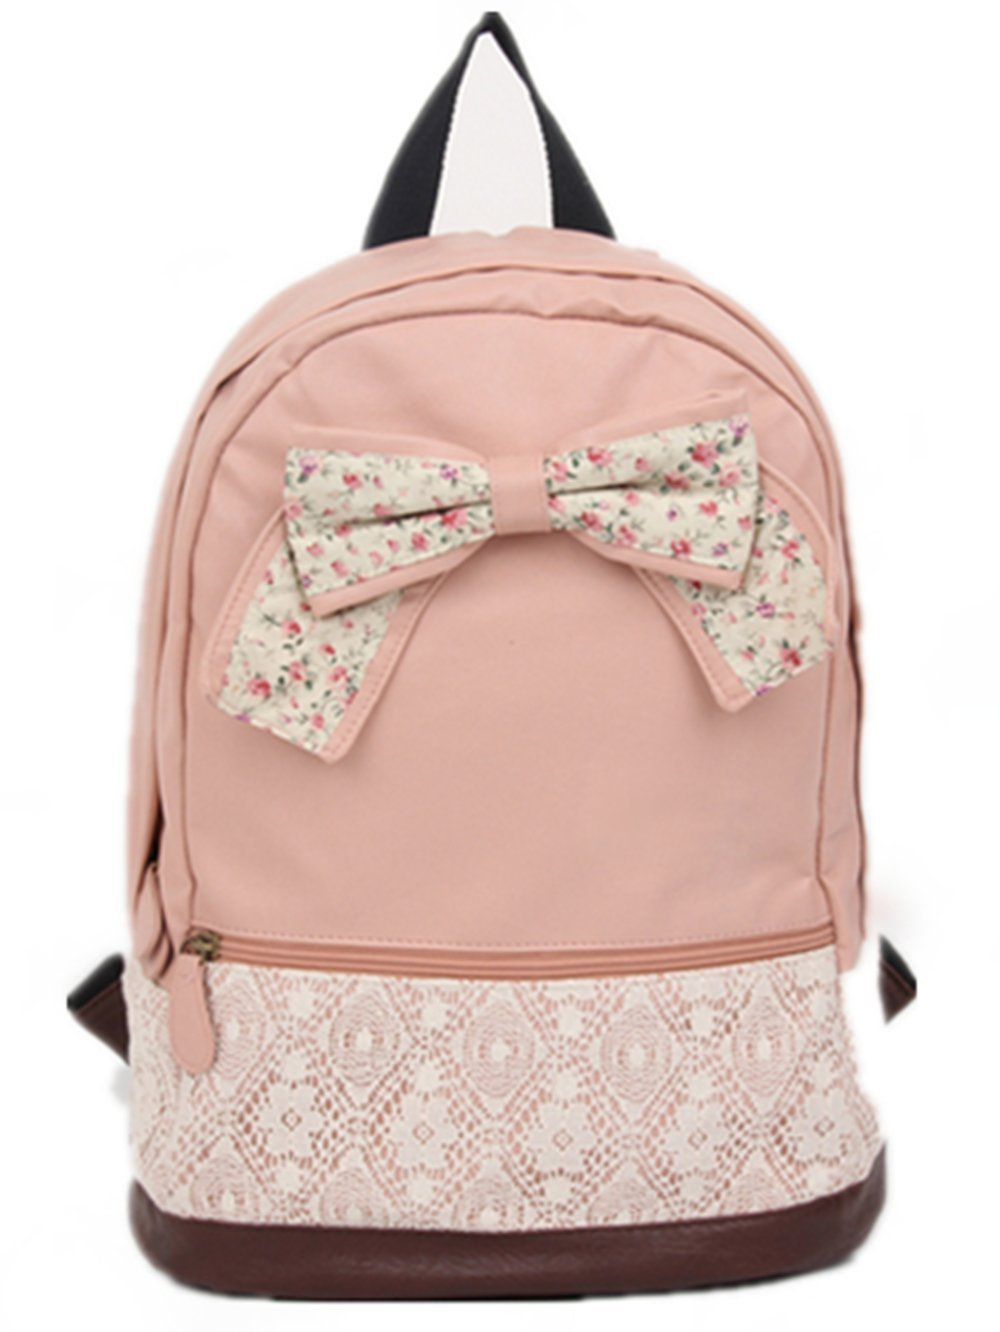 Backpacks for Girls - Pictures & Reviews of Bags